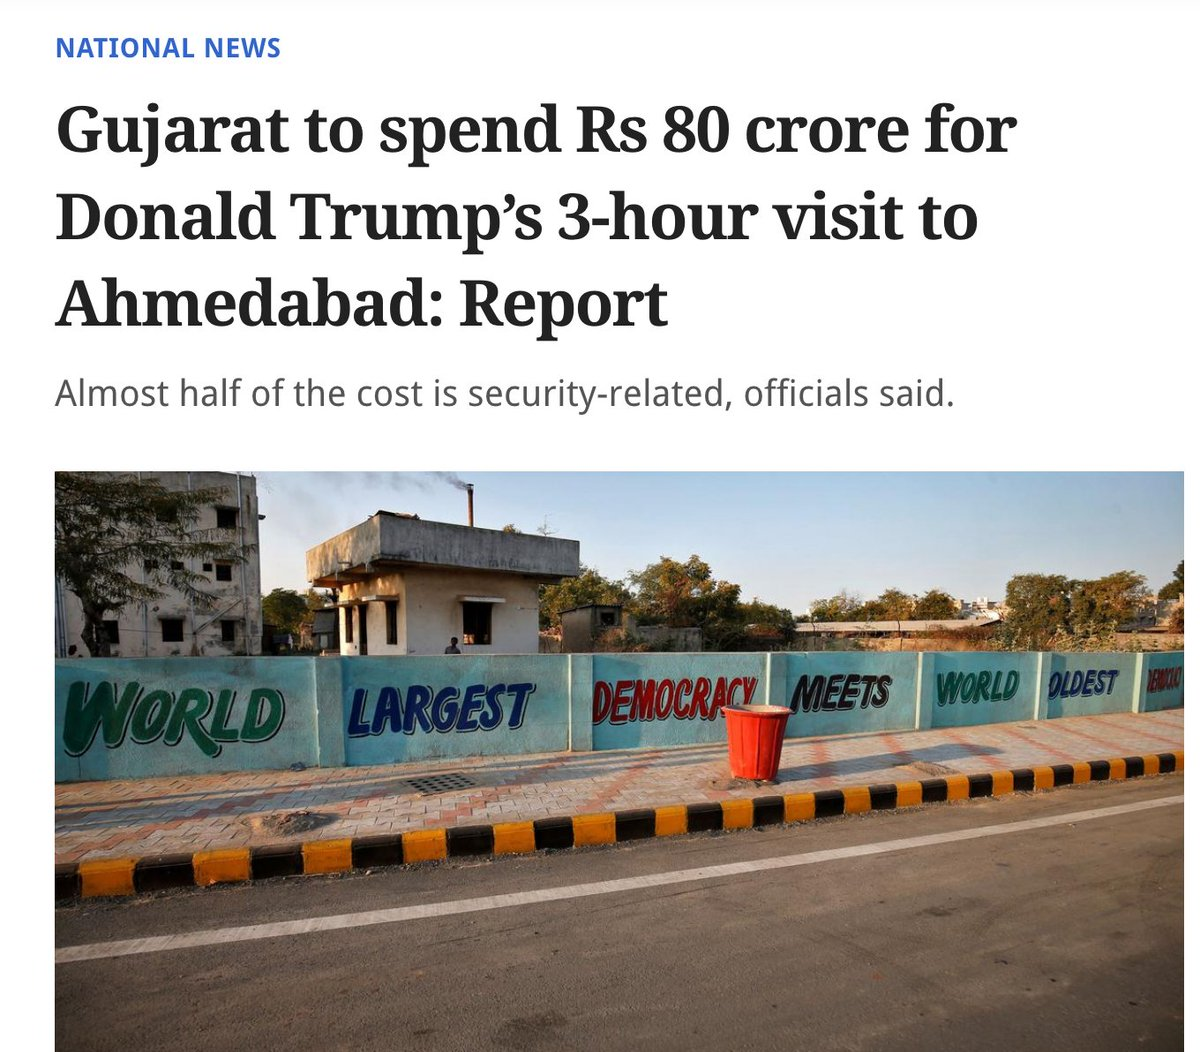 Even after spending Rs 80 crore, they have a grammatical error on wall😂. #TrumpIndiaVisit #GujratModel